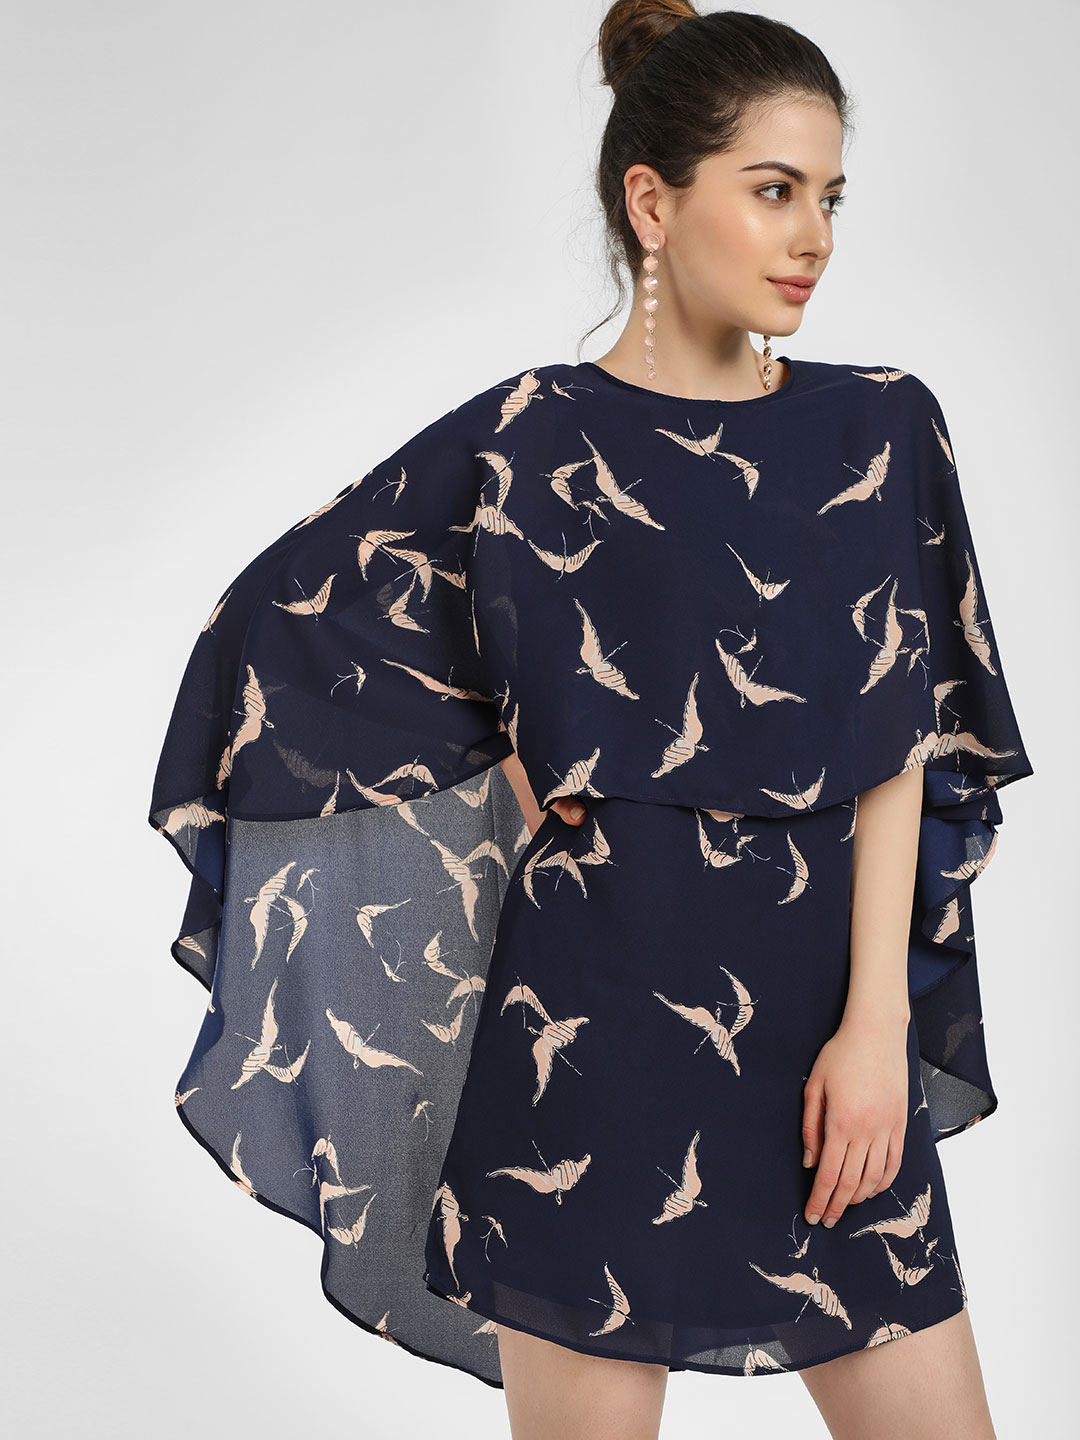 Femella Navy Bird Print Cape Overlap Dress 1